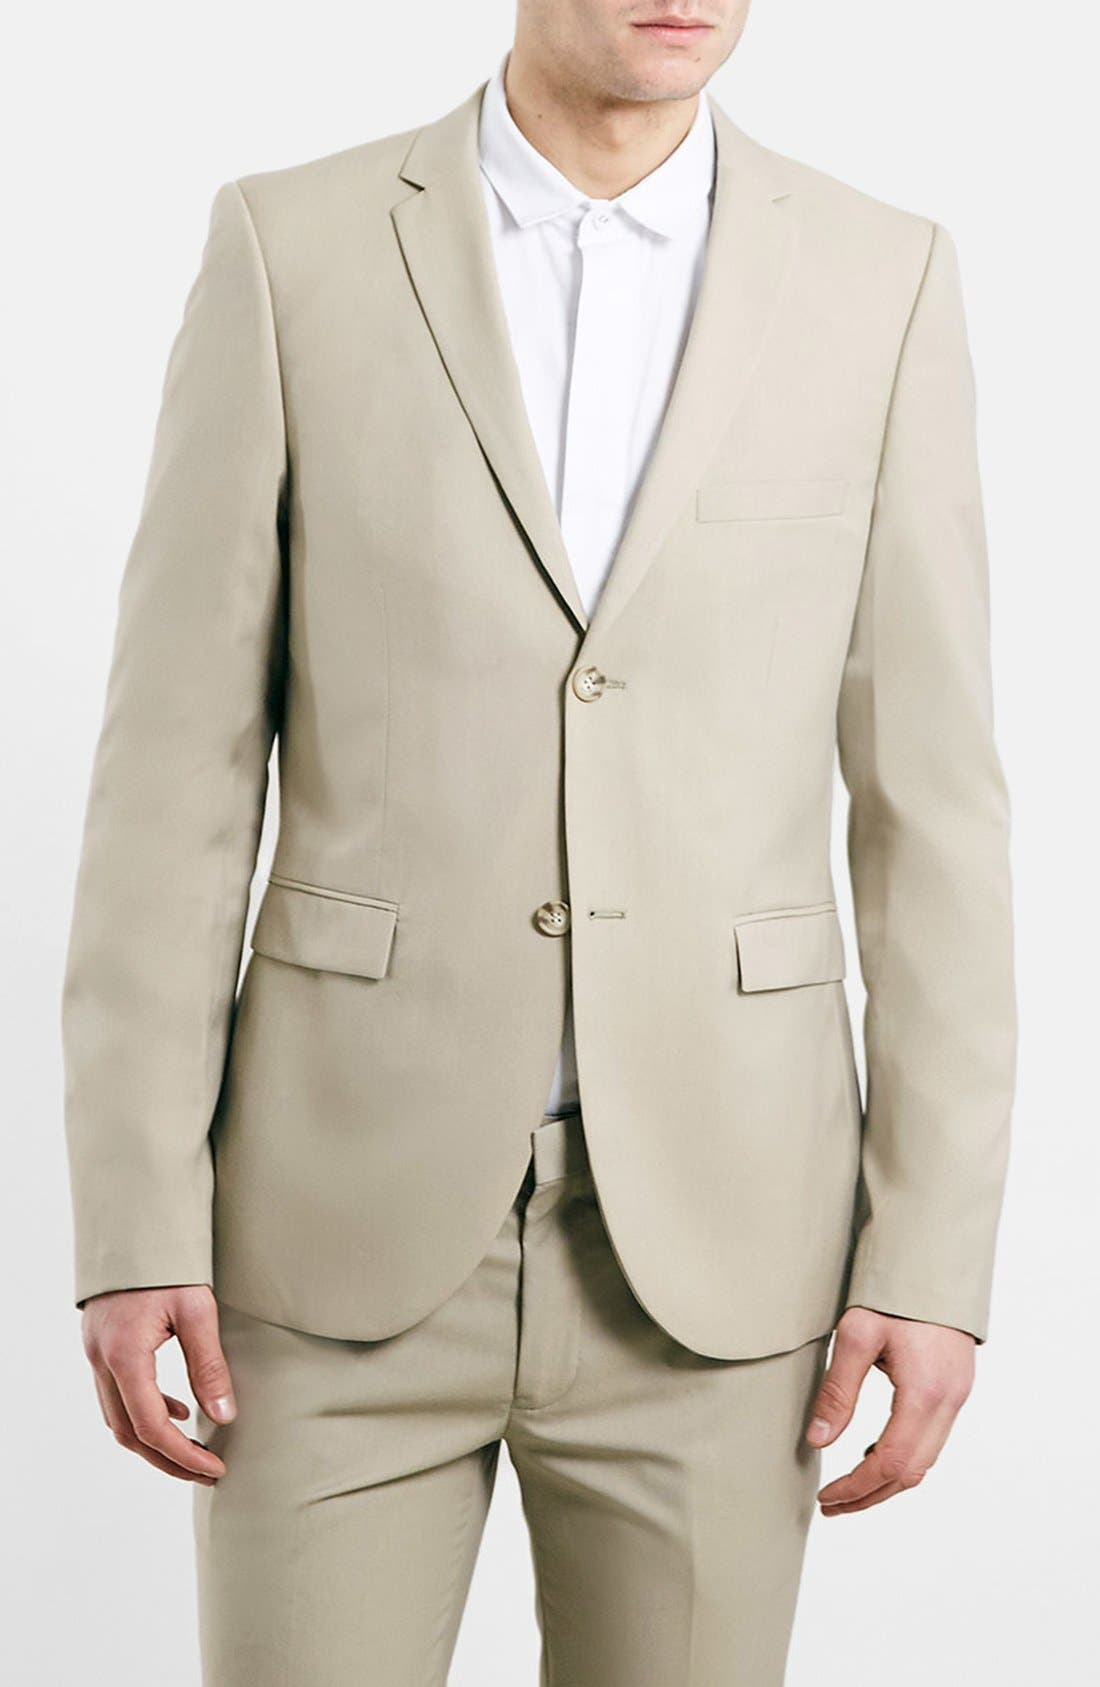 TOPMAN, Camel Ultra Skinny Suit Jacket, Main thumbnail 1, color, 252